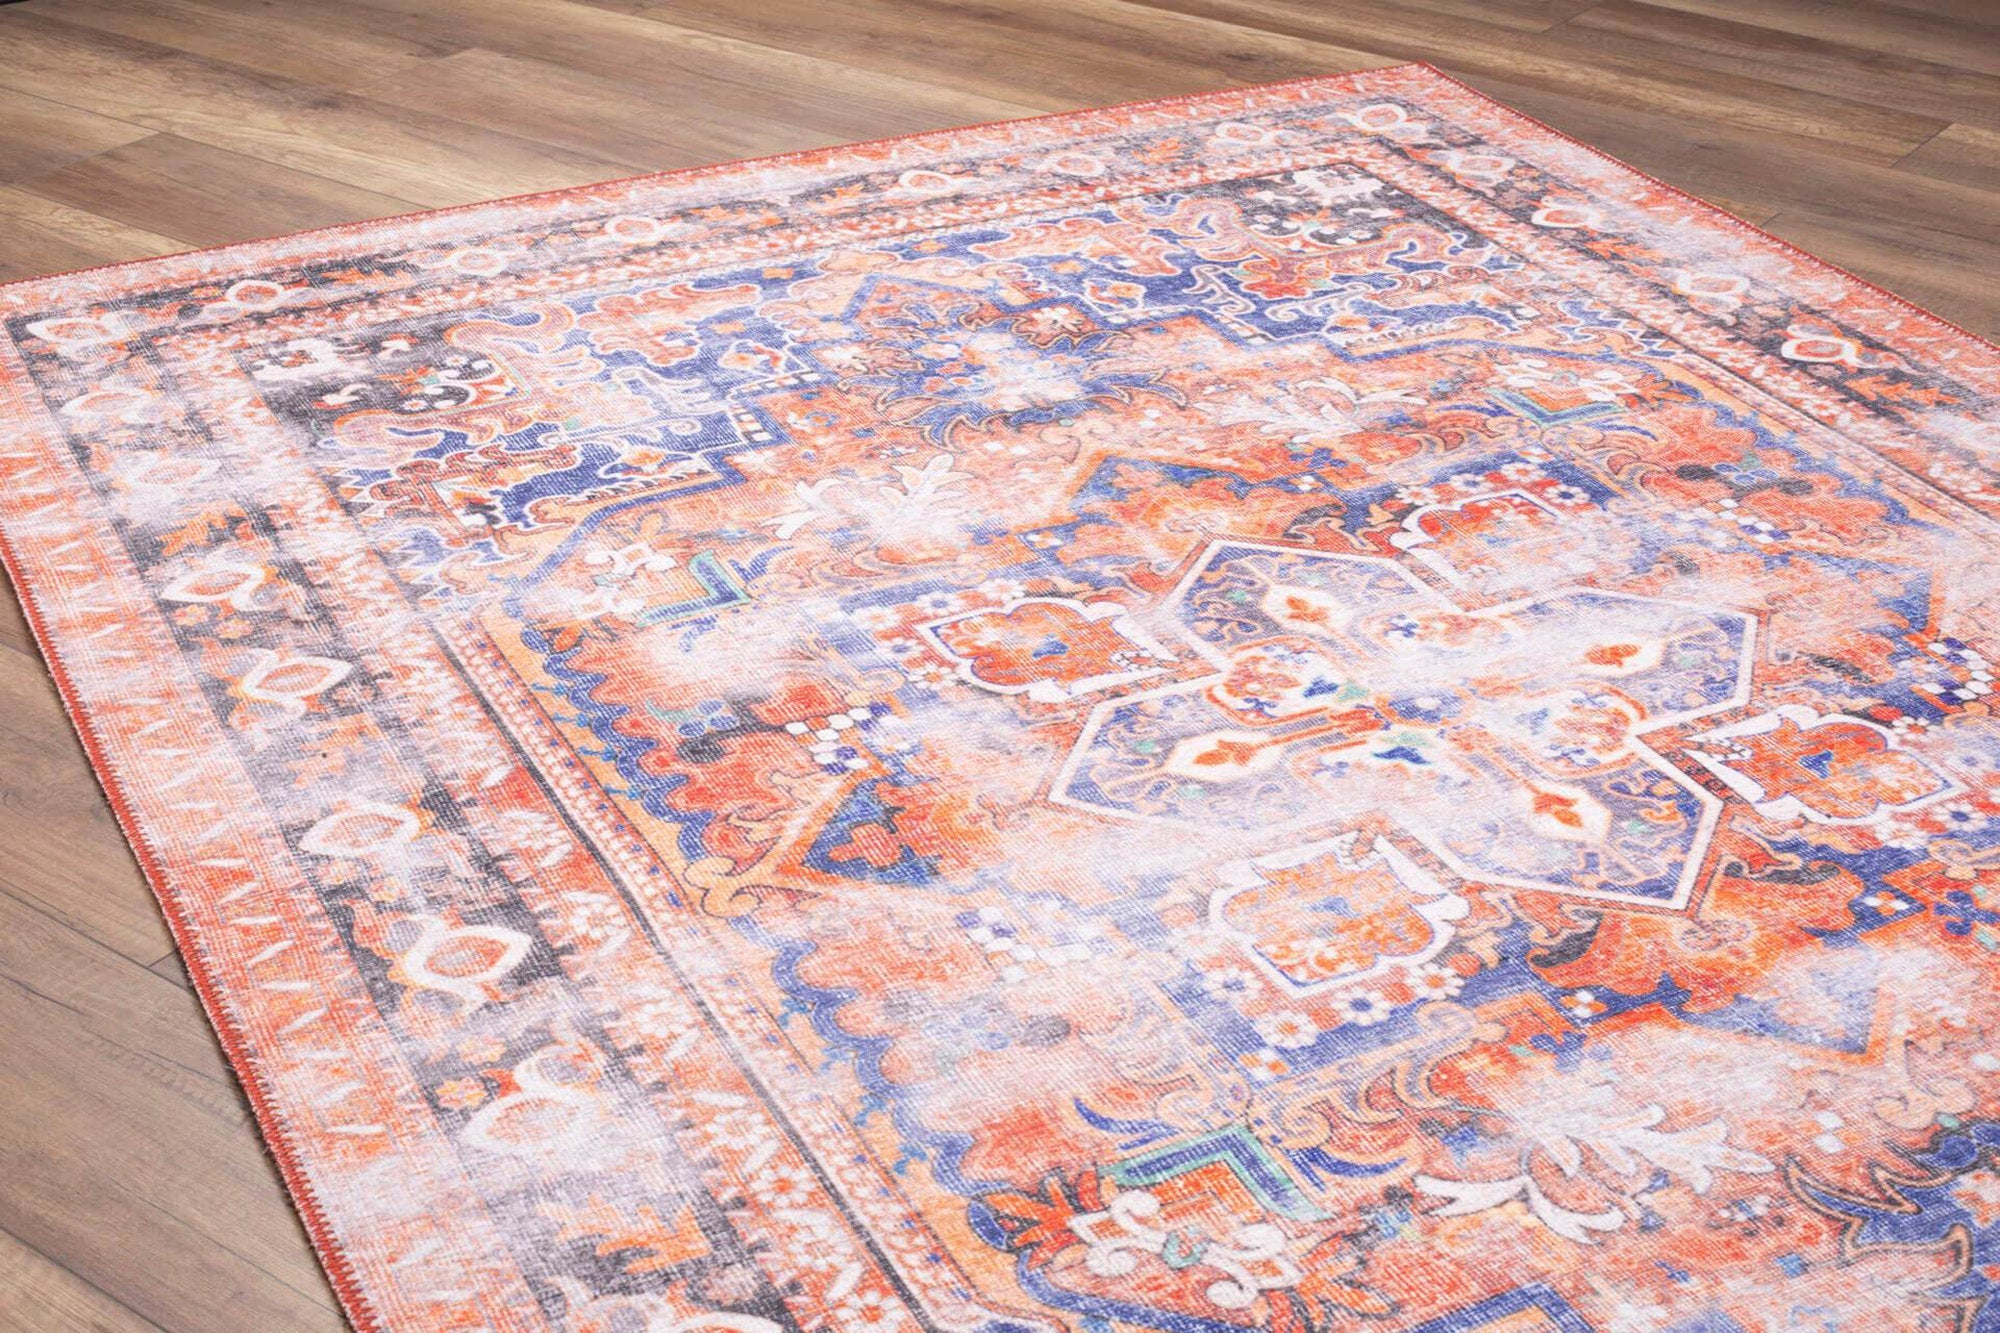 AFRA | Heriz Design, Oriental Faded rug, Persian Style, Antique Hand knotted looks, Home decor, Central Medallion, Light Navy Blue, Orange